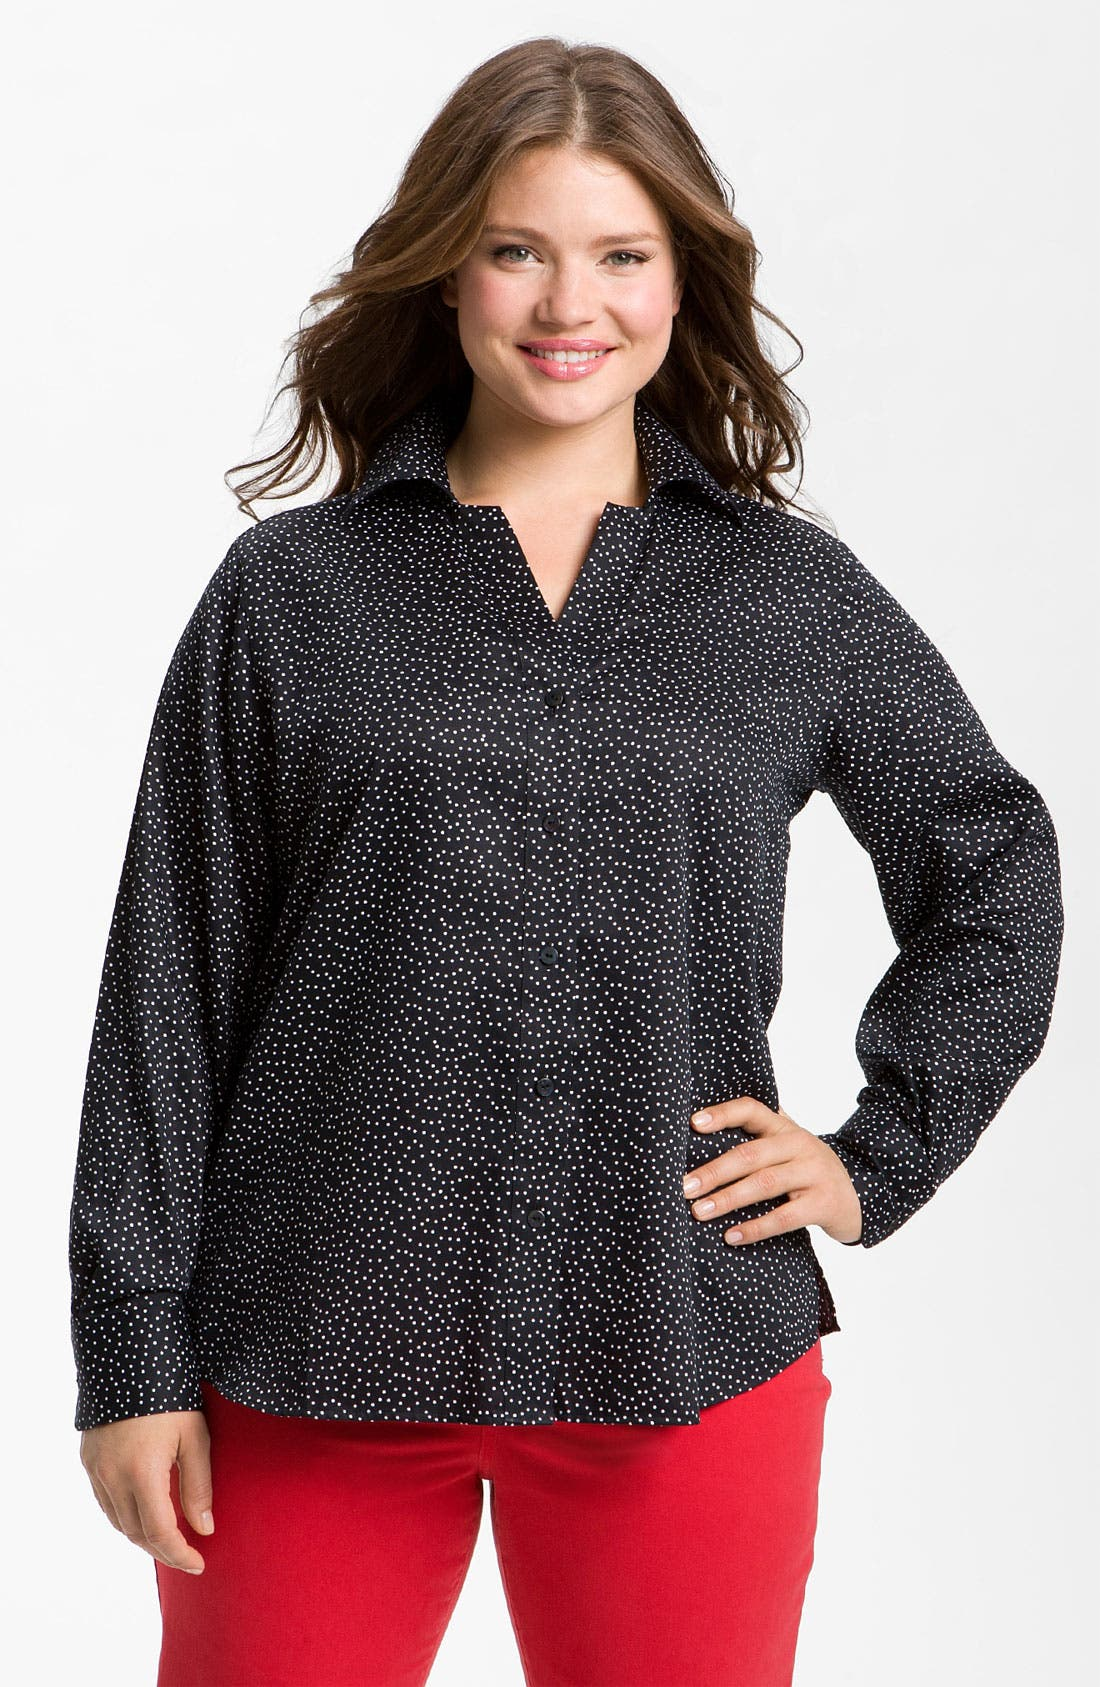 Alternate Image 1 Selected - Foxcroft 'Scattered Dots' Shirt (Plus)